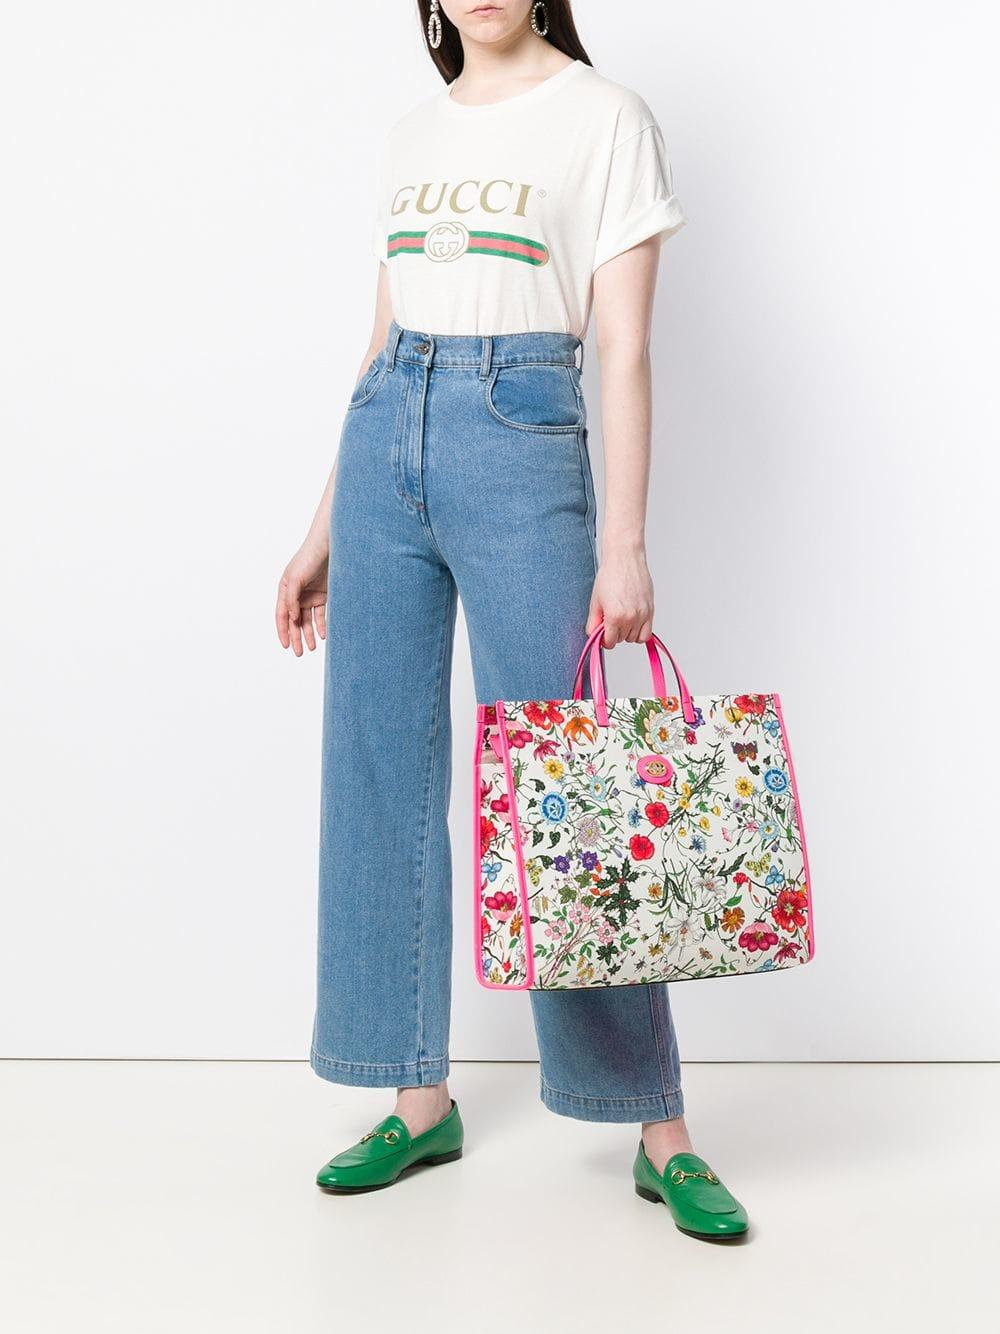 63007140ed5b Gucci Floral Print Tote Bag in White - Lyst